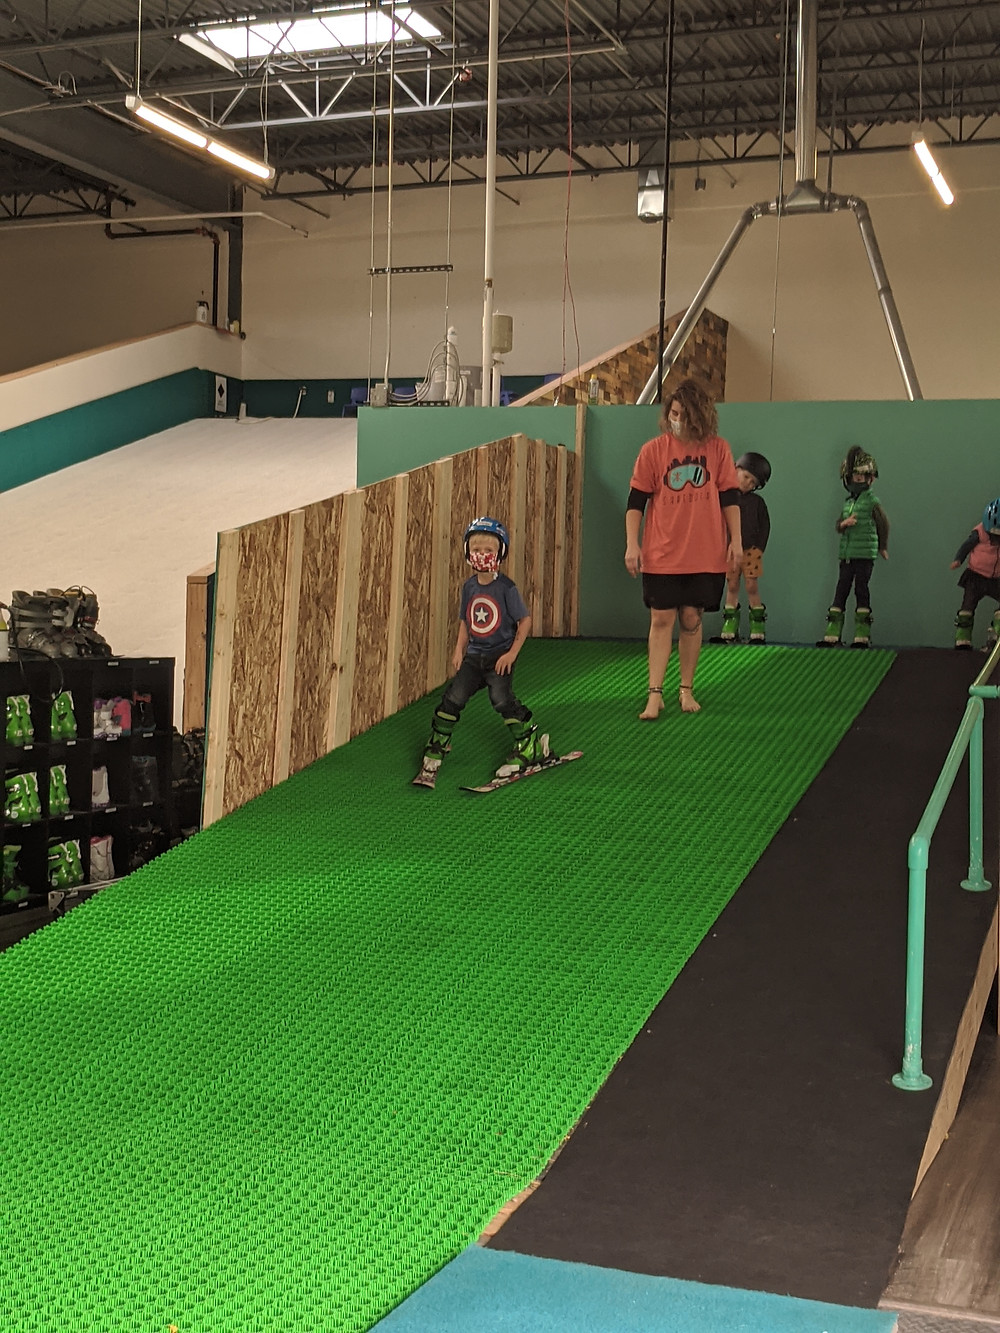 Toddler skiing at indoor ski school lessons